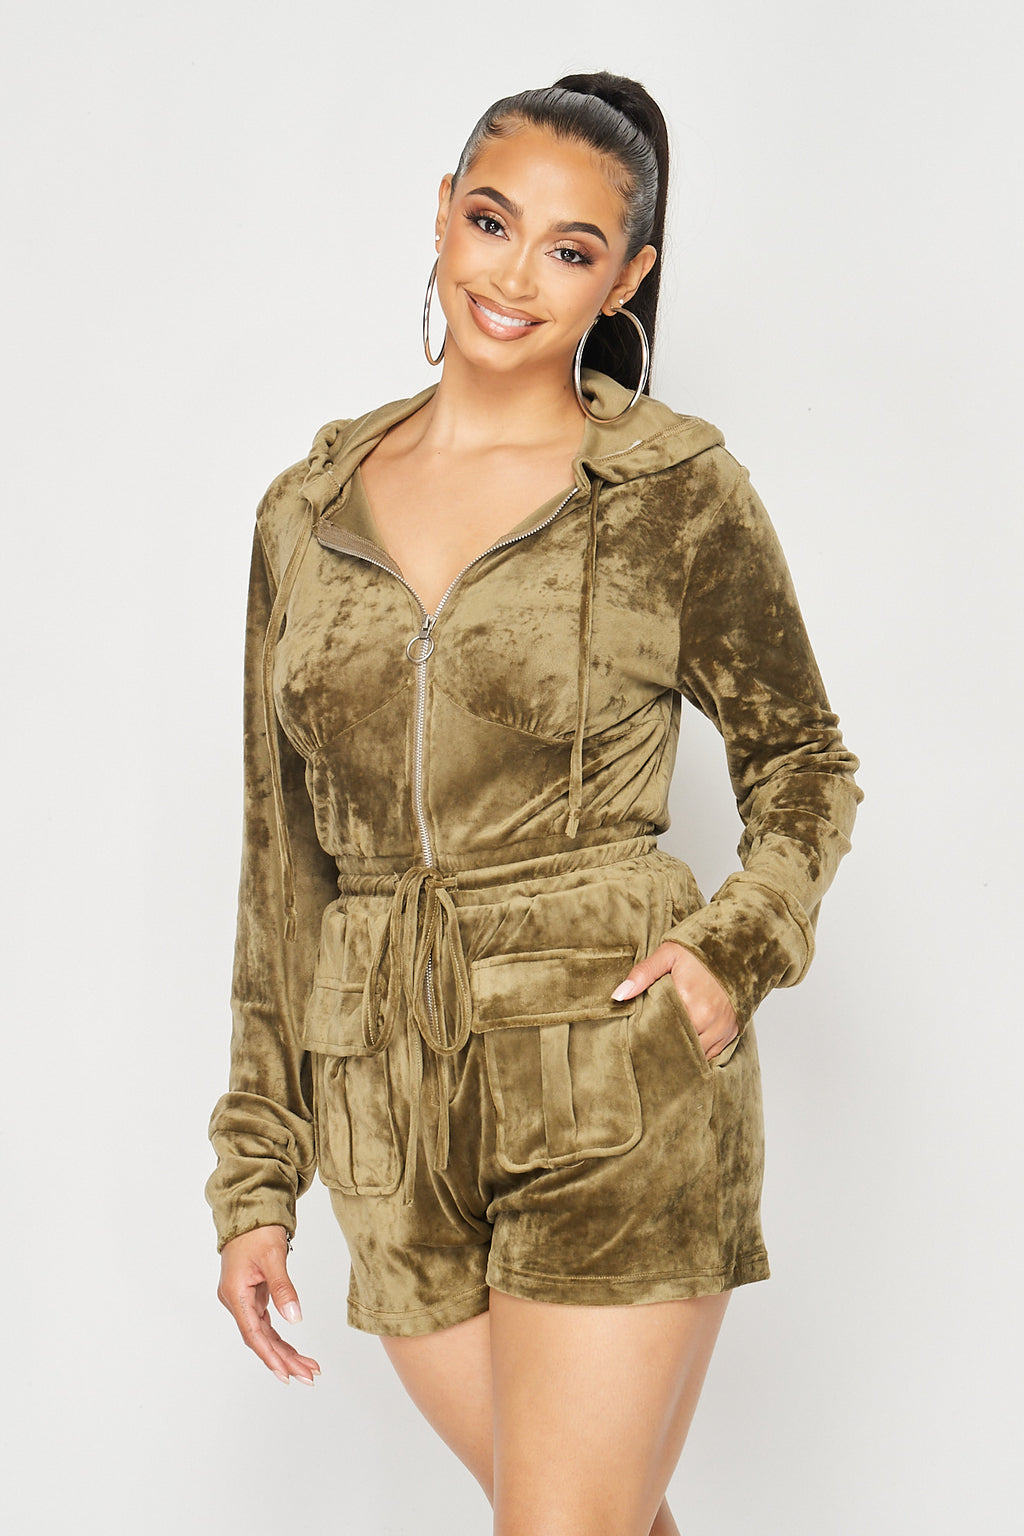 Velvet Hooded Romper with Front Zipper and Pocket Details in Olive - Fashion House USA